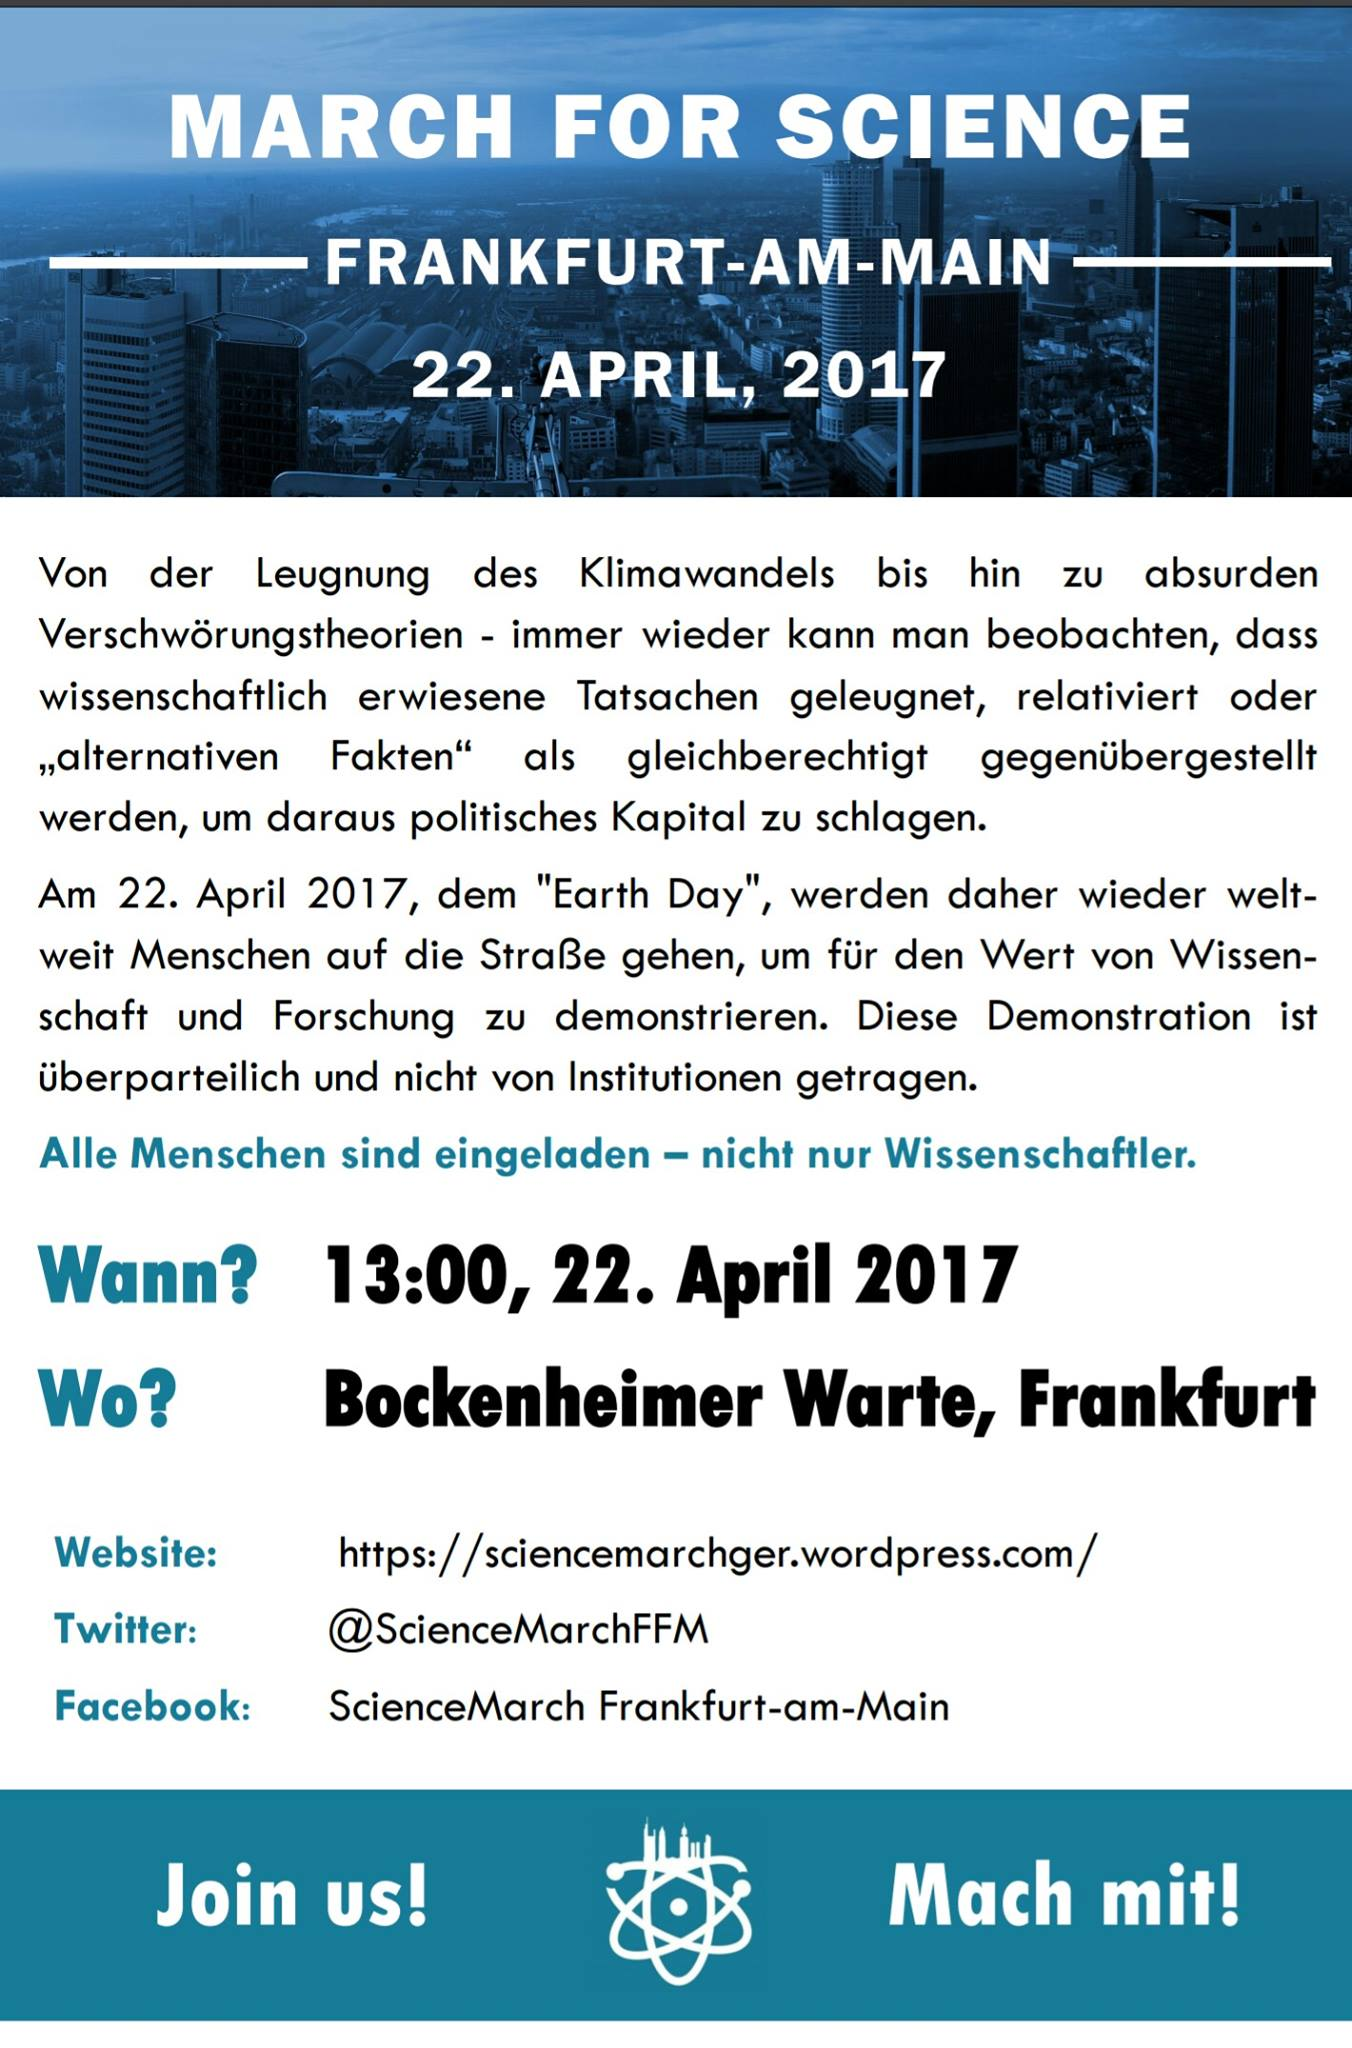 ScienceMarch Frankfurt